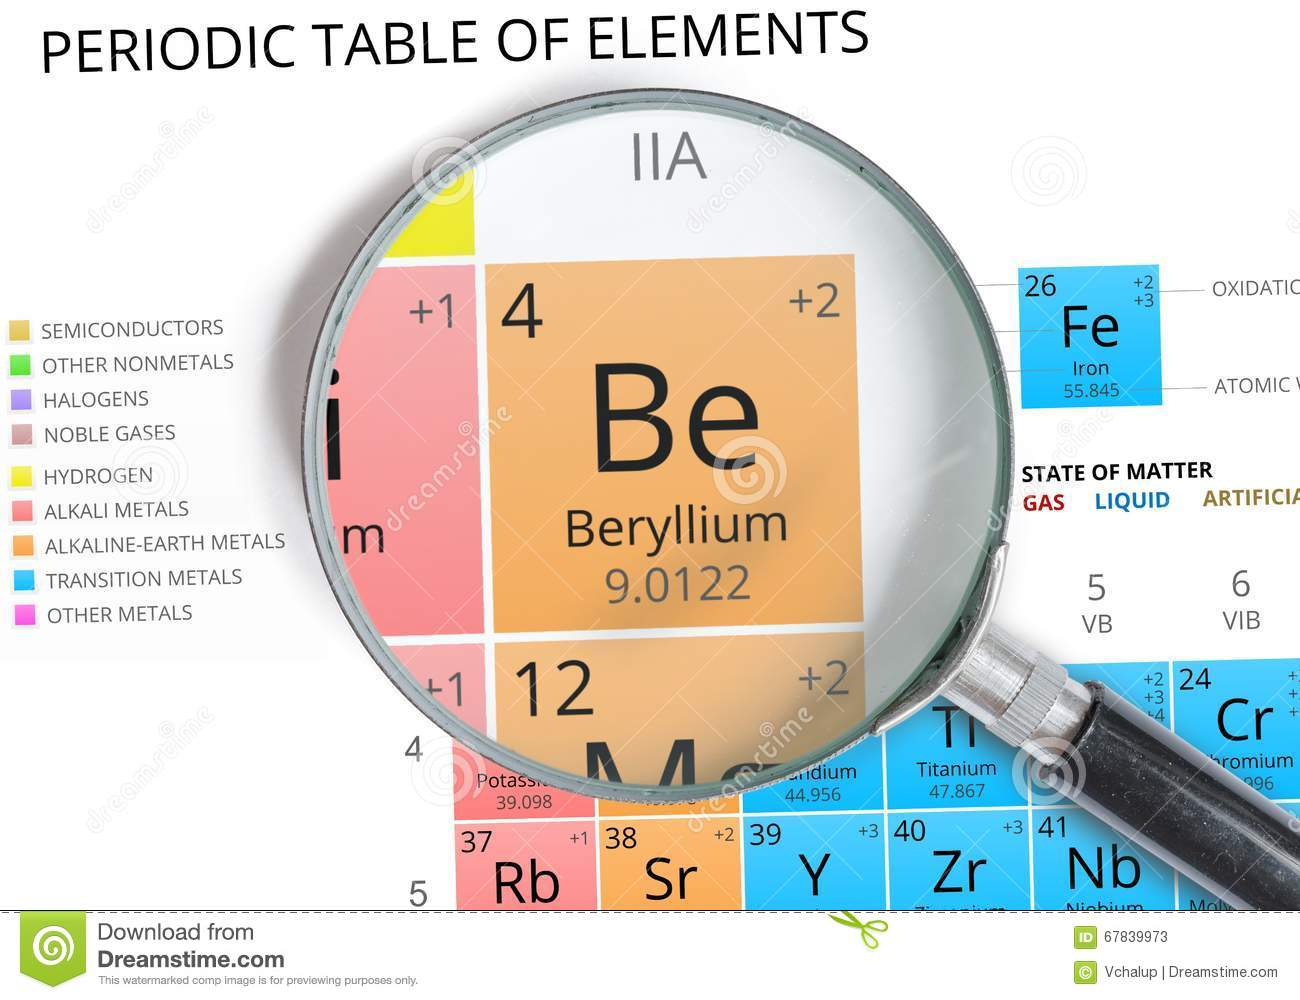 Beryllium symbol be element of the periodic table zoomed beryllium symbol be element of the periodic table zoomed buycottarizona Image collections